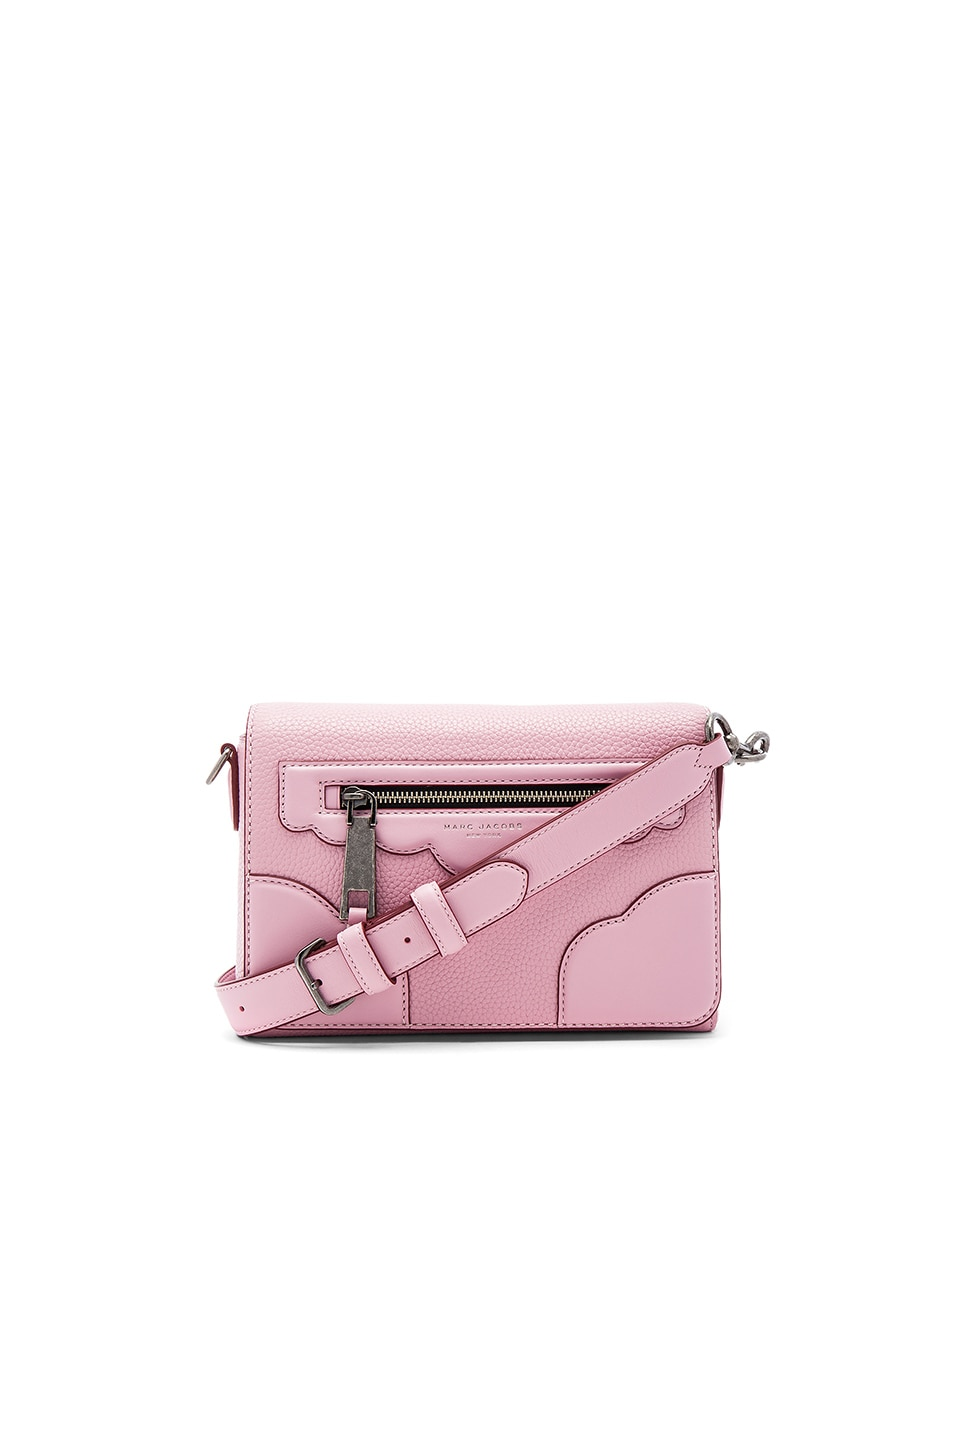 Marc Jacobs Haze Small Shoulder Bag in Pink Fleur